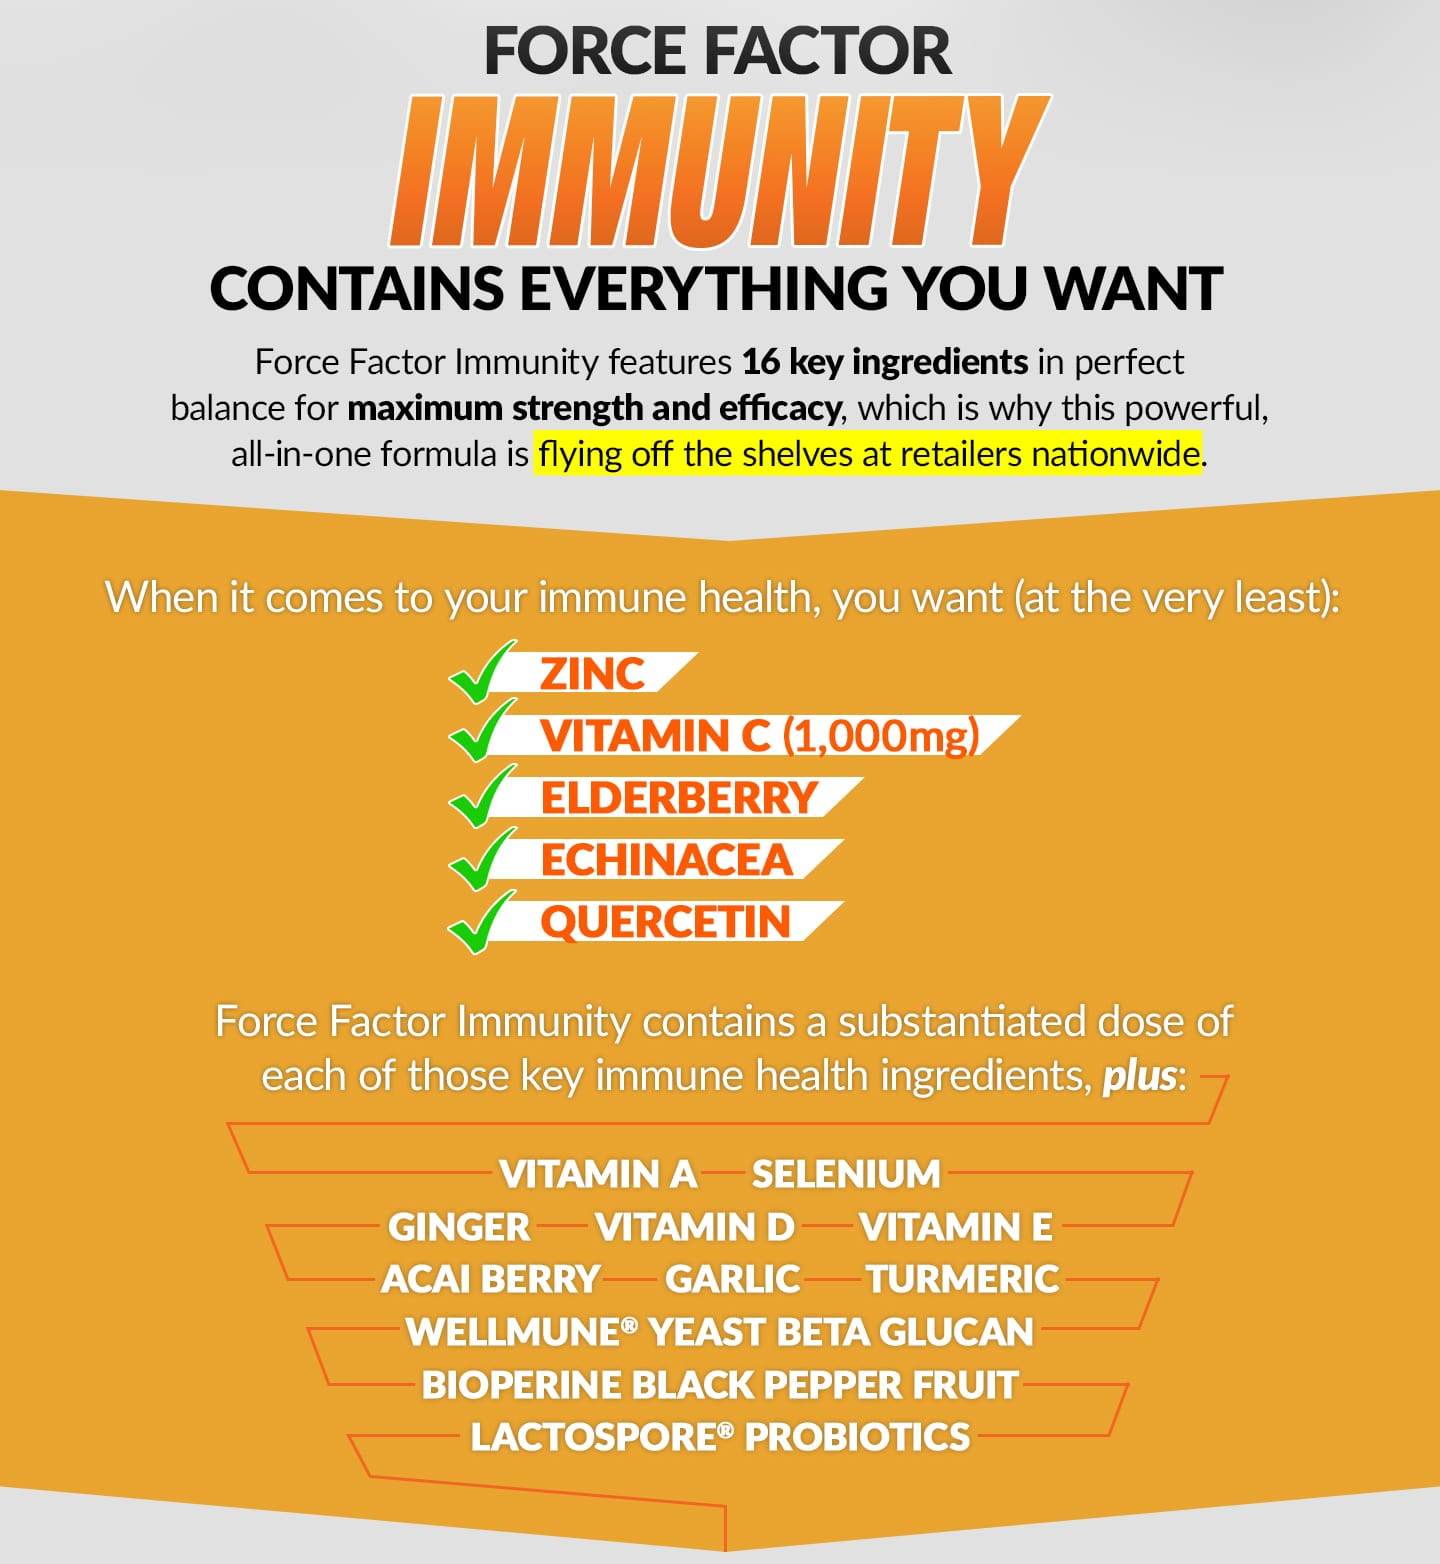 FORCE FACTOR IMMUNITY CONTAINS EVERYTHING YOU WANT. Force Factor Immunity features 16 key ingredients in perfect balance for maximum strength and efficacy, which is why this powerful, all-in-one formula is flying off the shelves at retailers nationwide. When it comes to your immune health, you want (at the very least): Zinc, Vitamin C (1,000mg), Elderberry, Echinacea, Quercetin. Force Factor Immunity contains a substantiated dose of each of those key immune health ingredients, plus: Vitamin A, Vitamin D, Vitamin E, Selenium, Wellmune® Yeast Beta Glucan, Ginger, Turmeric, Acai Berry, Garlic, LactoSpore® Probiotics, BioPerine Black Pepper Fruit.